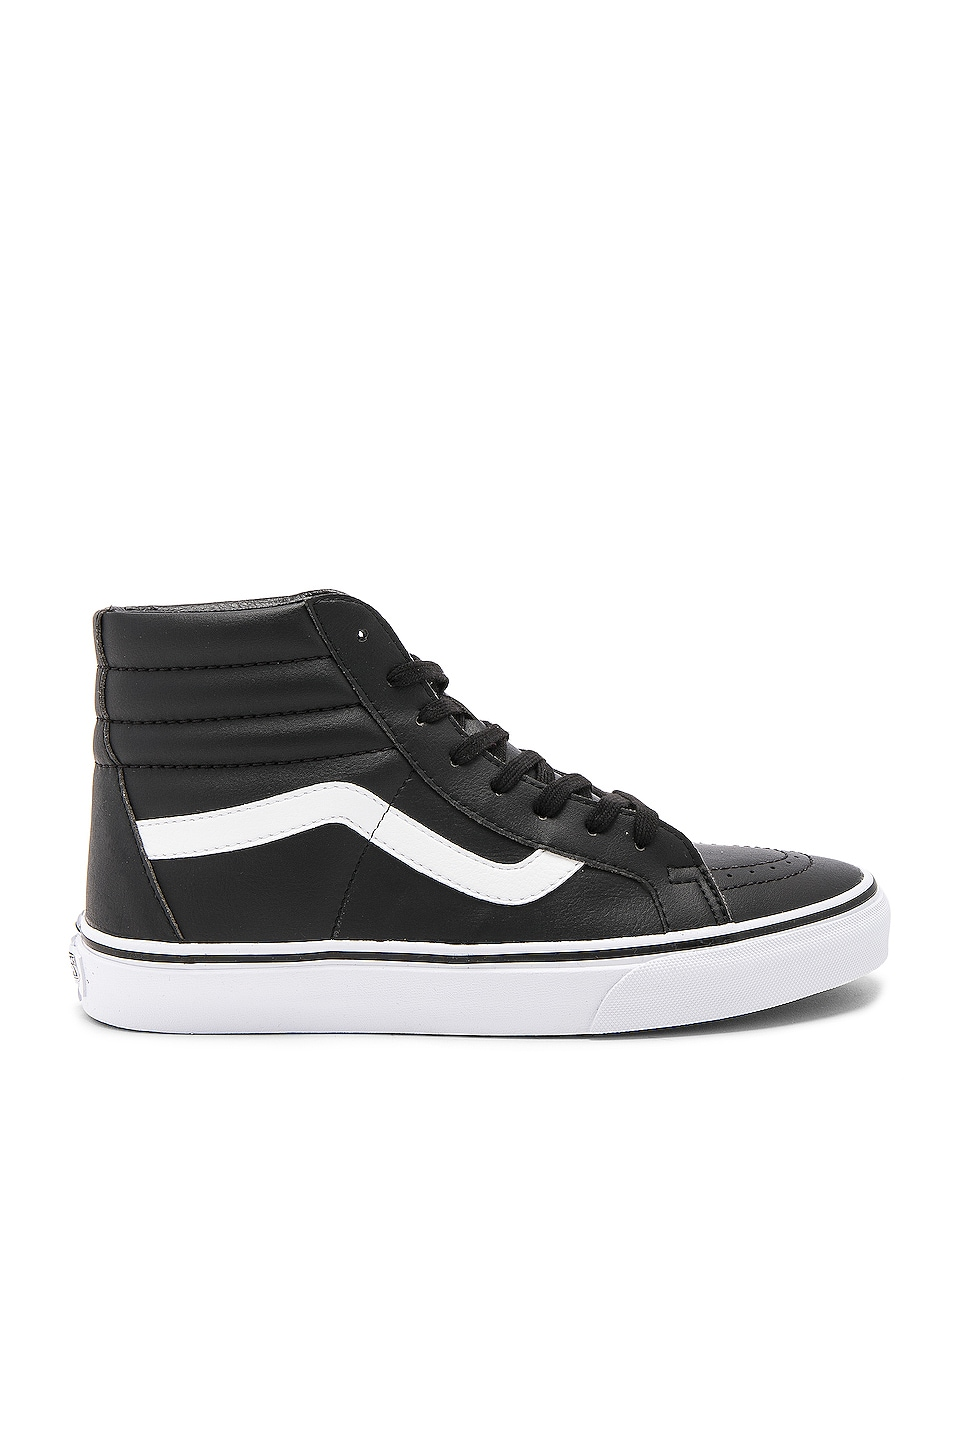 Vans SK8 Hi Reissue in Black & True White